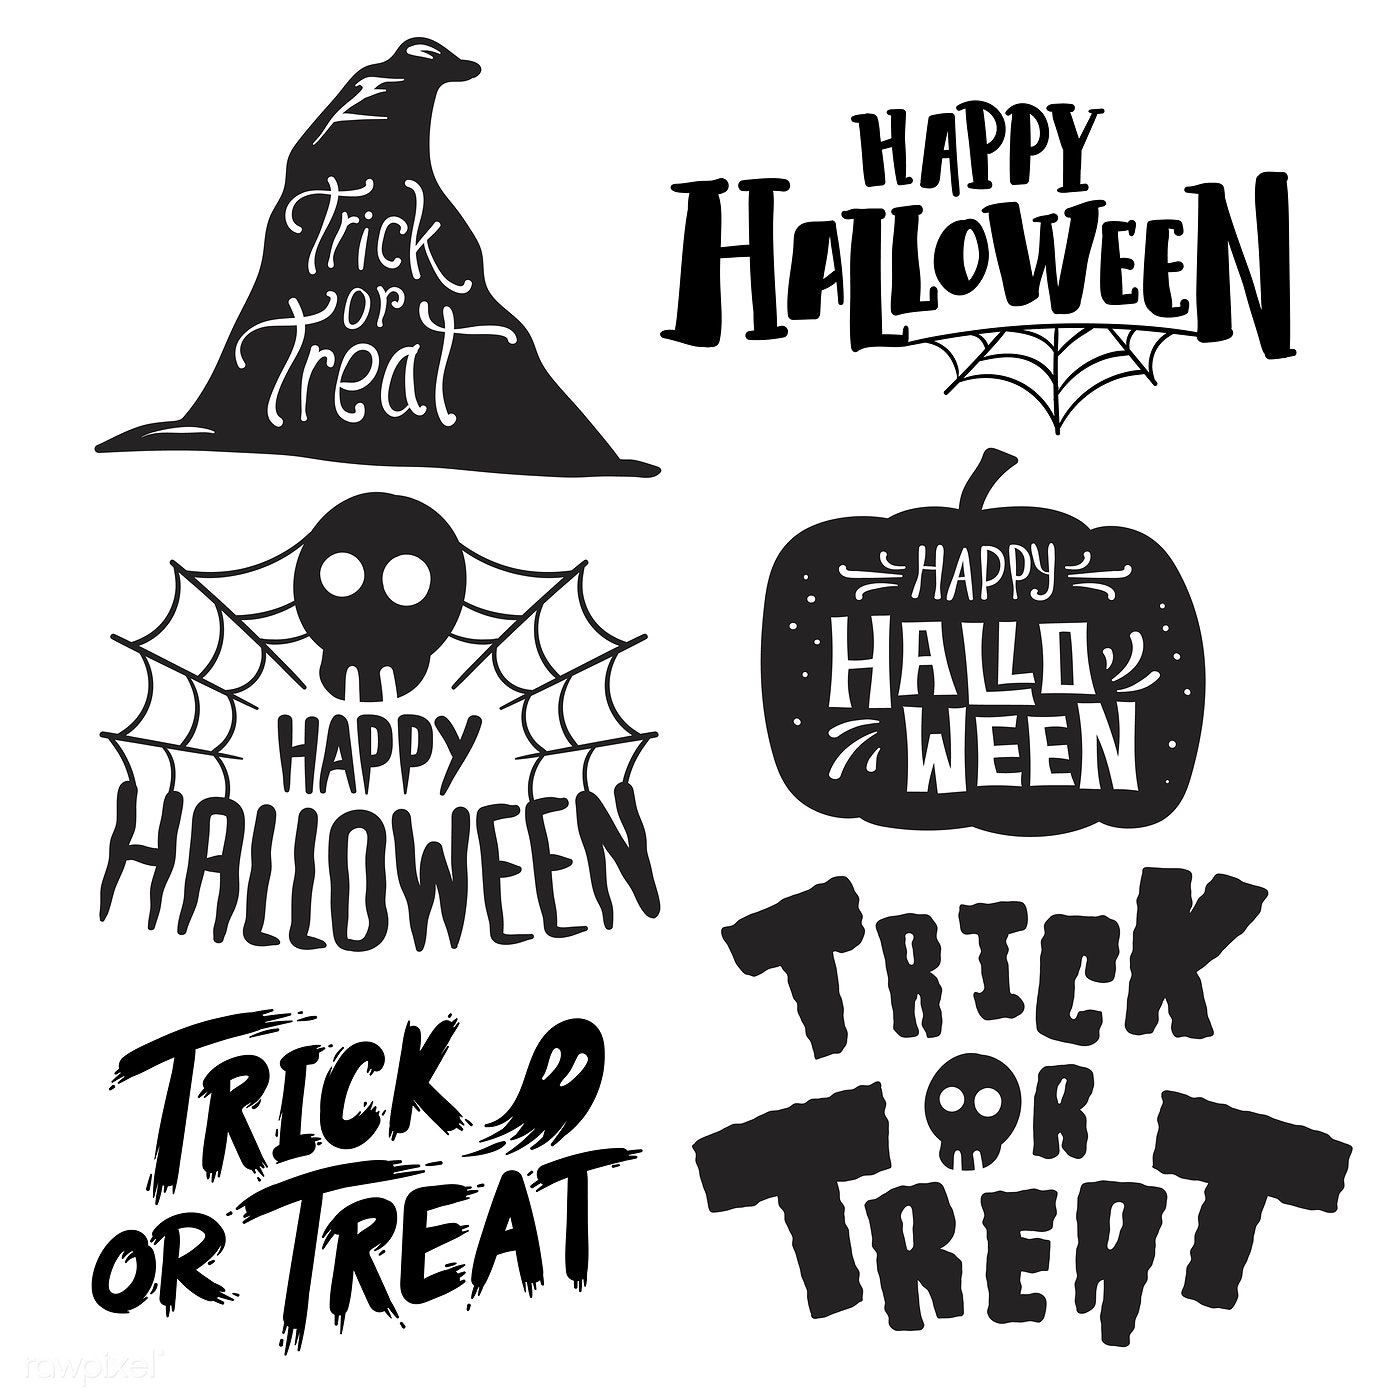 Set of Happy Halloween vectors free image by